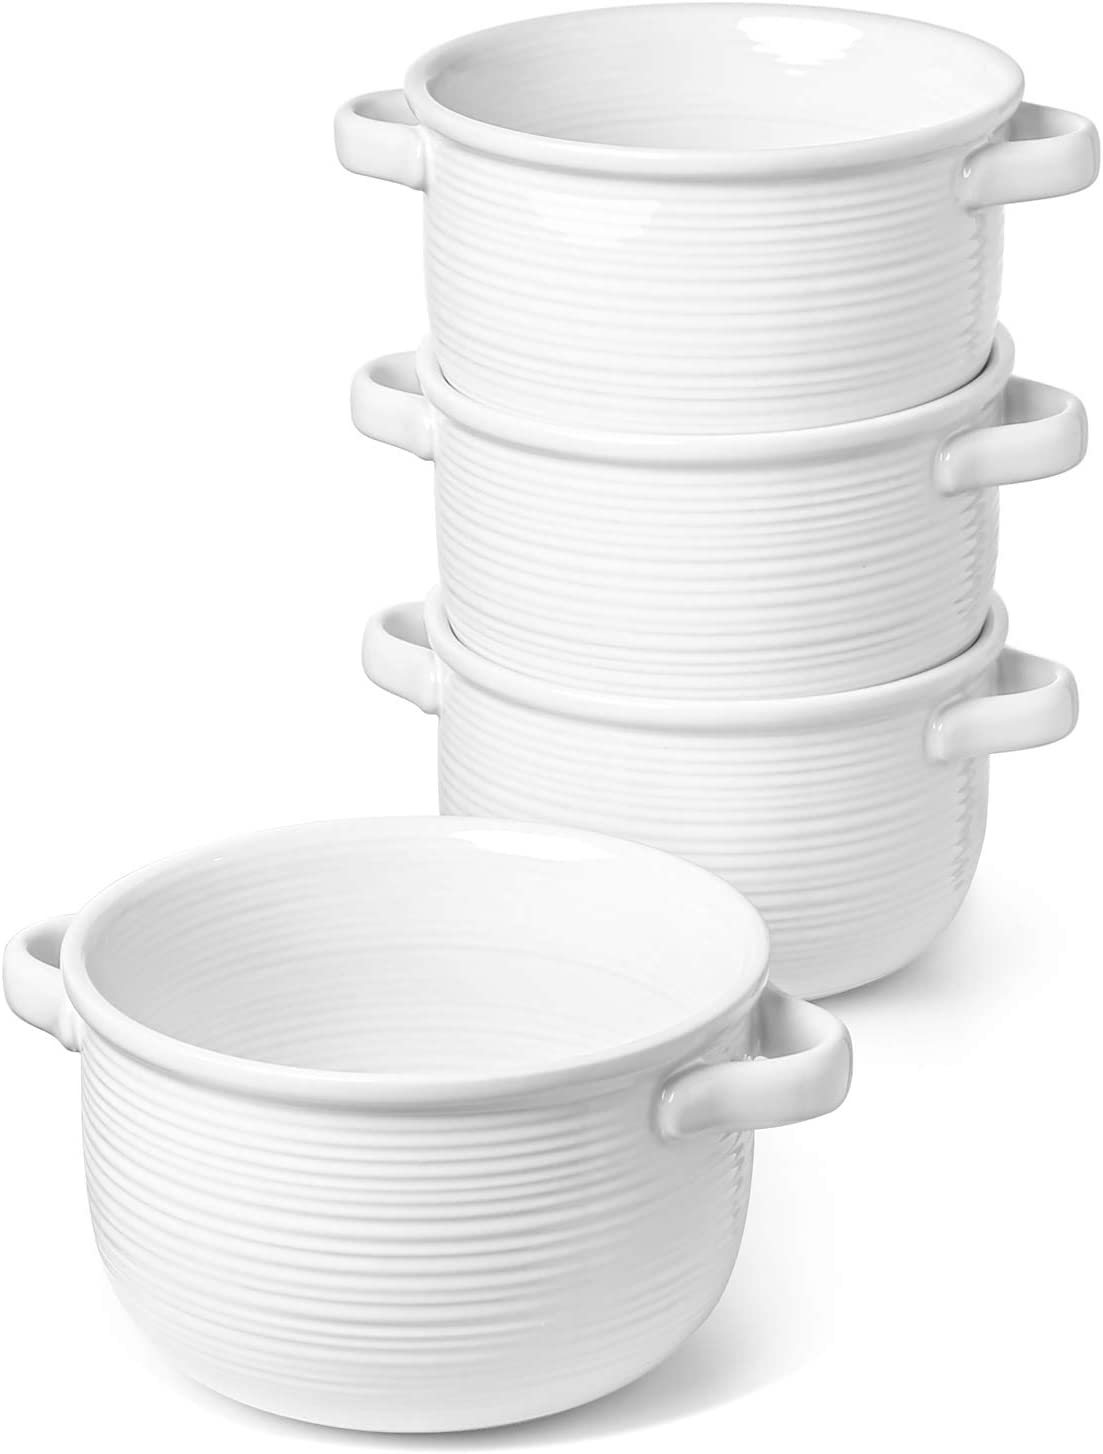 LE TAUCI Soup Bowls With Handles, 28 Ounce for Soup, chili, beef stew, Set of 4, White